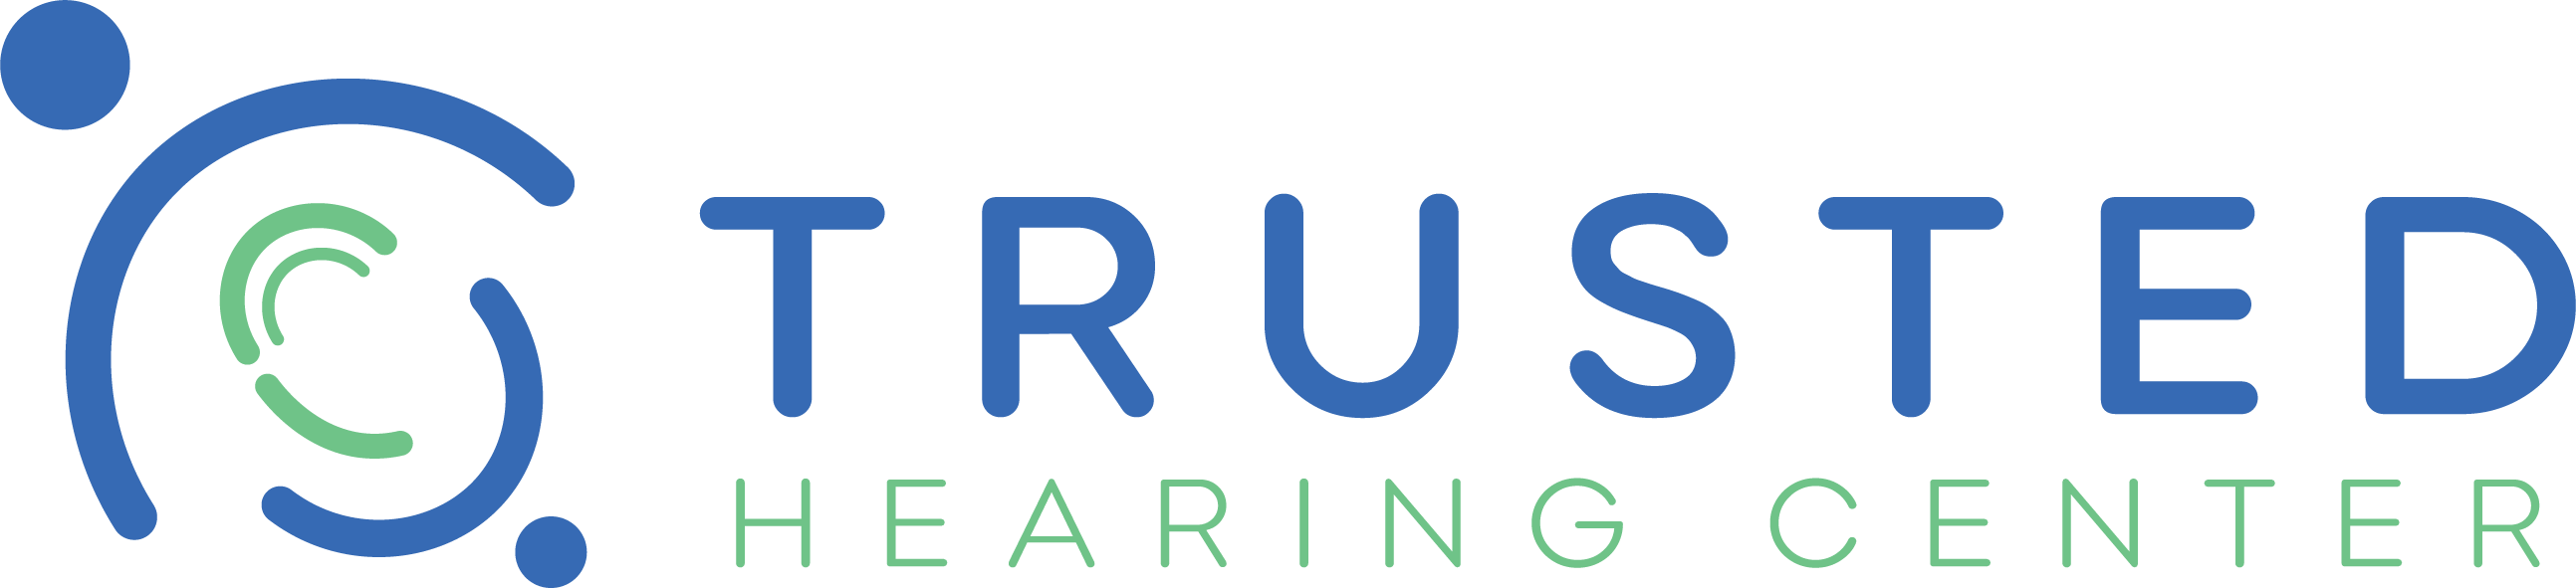 Trusted Hearing Center Logo